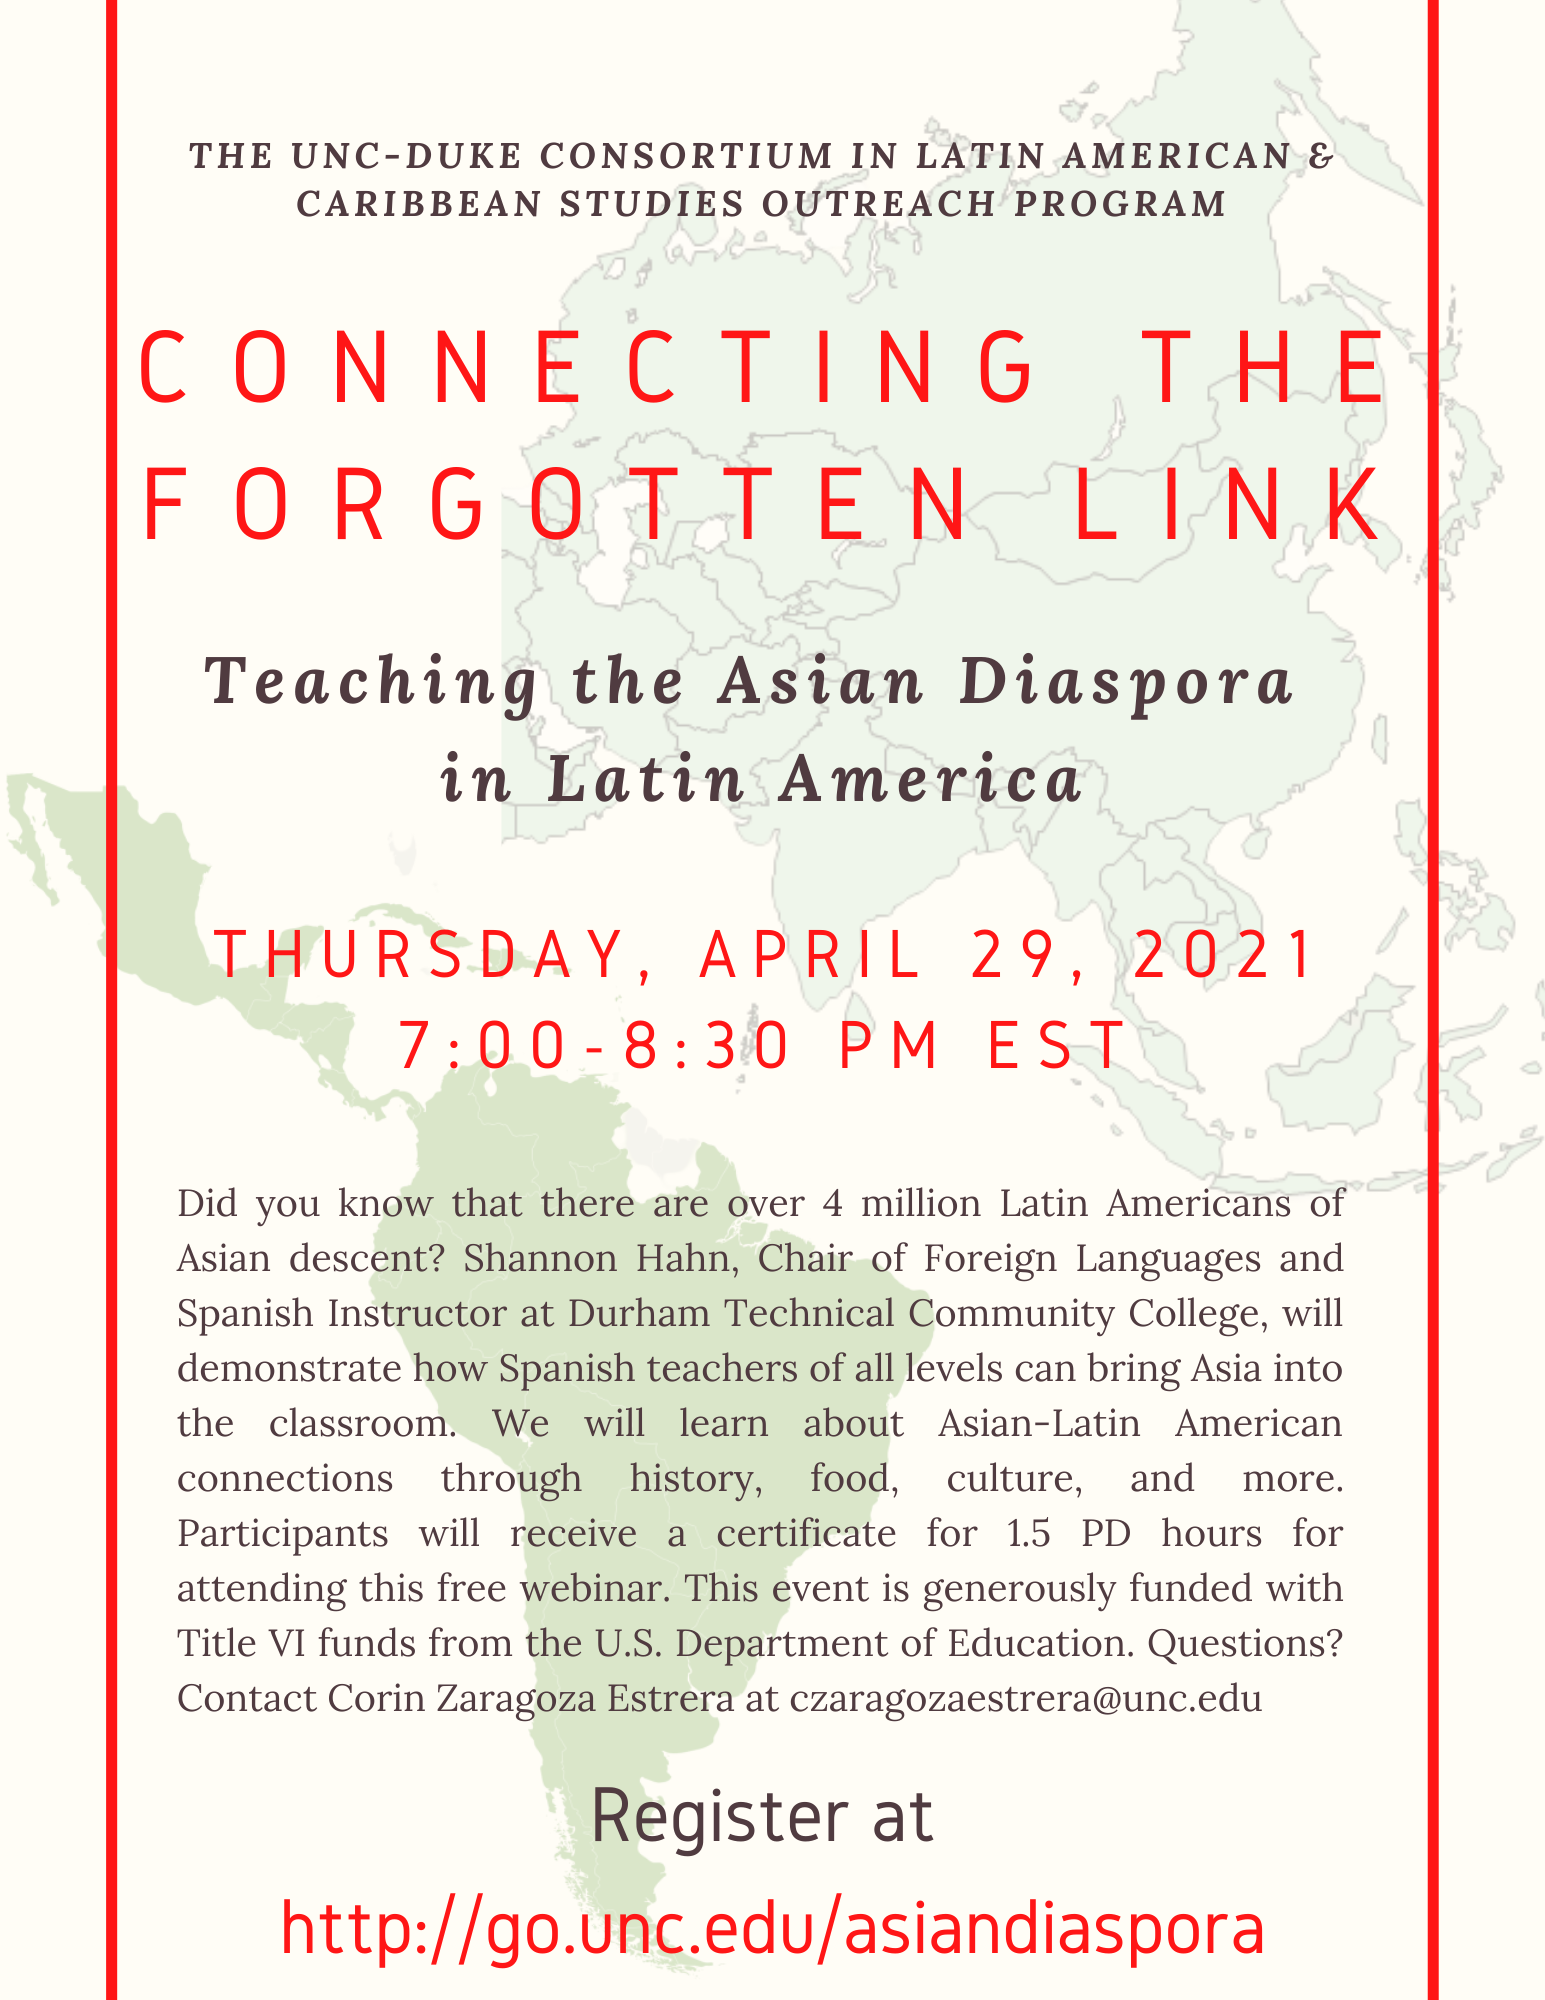 Teaching the Asian Diaspora in Latin America